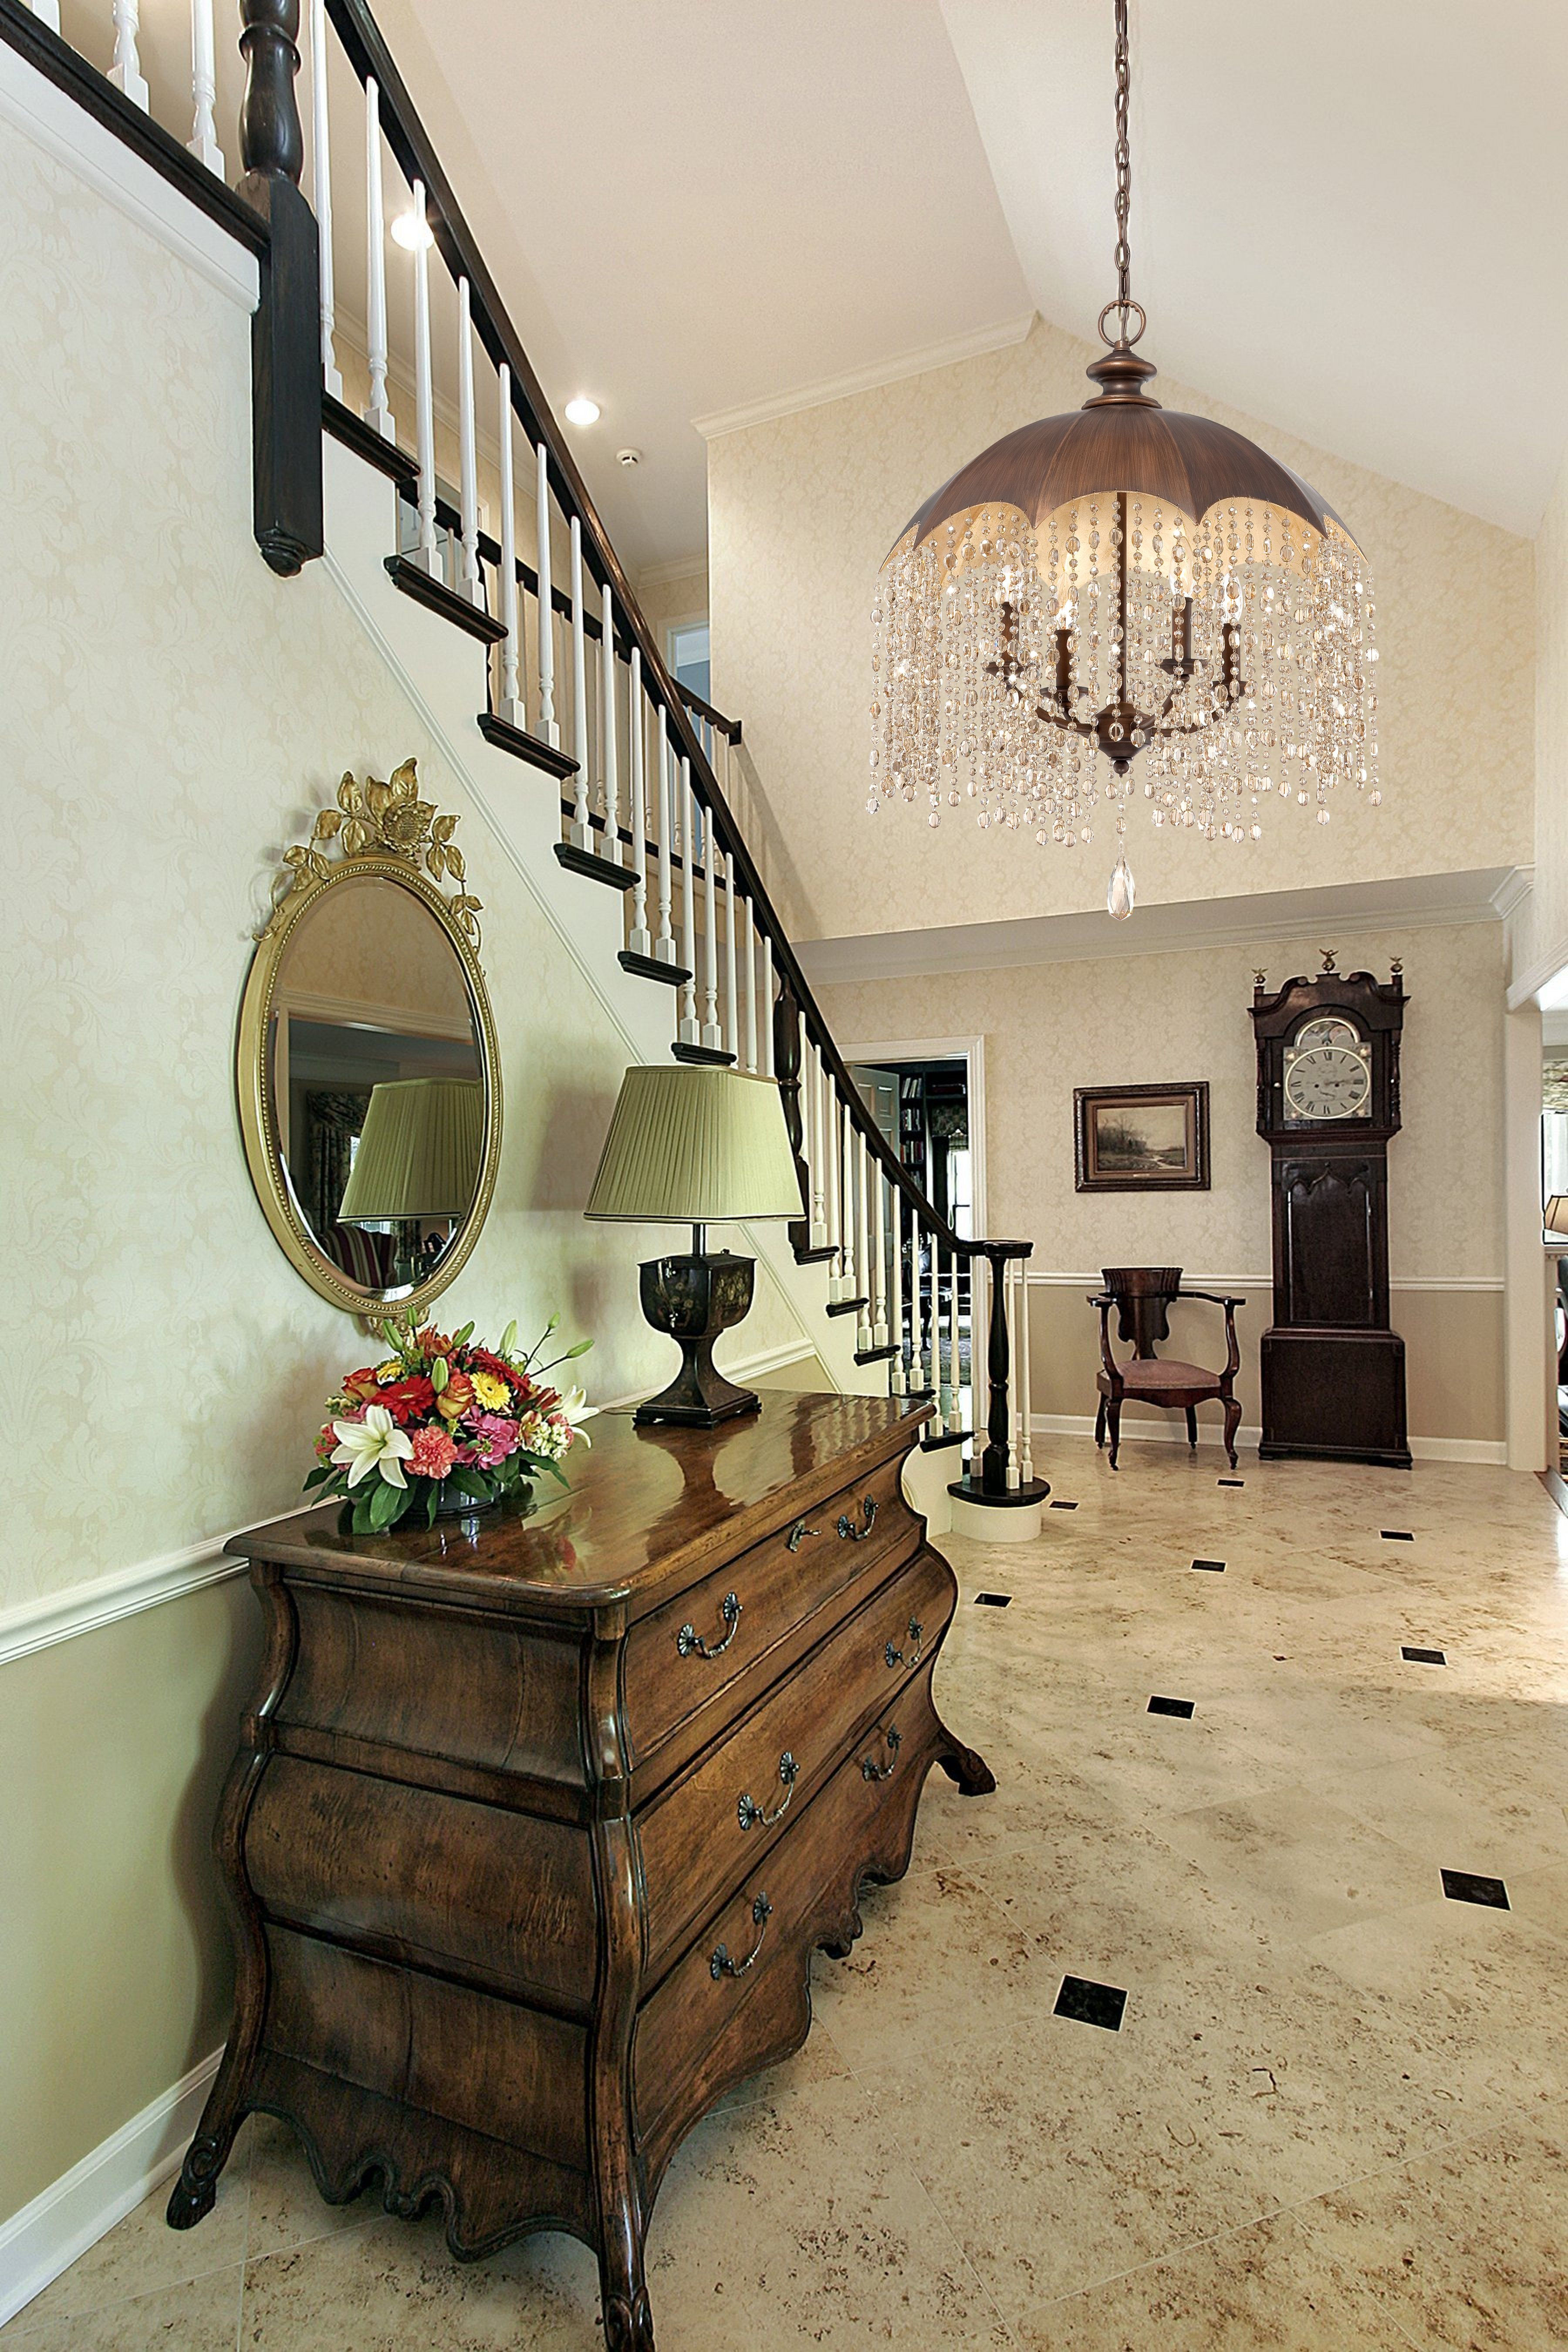 Charmant Foyer With Sloped Ceiling And Dark Wood And White Staircase. Staircase  Access Is At The End Of The Foyer Creating An Entry Hall Effect.